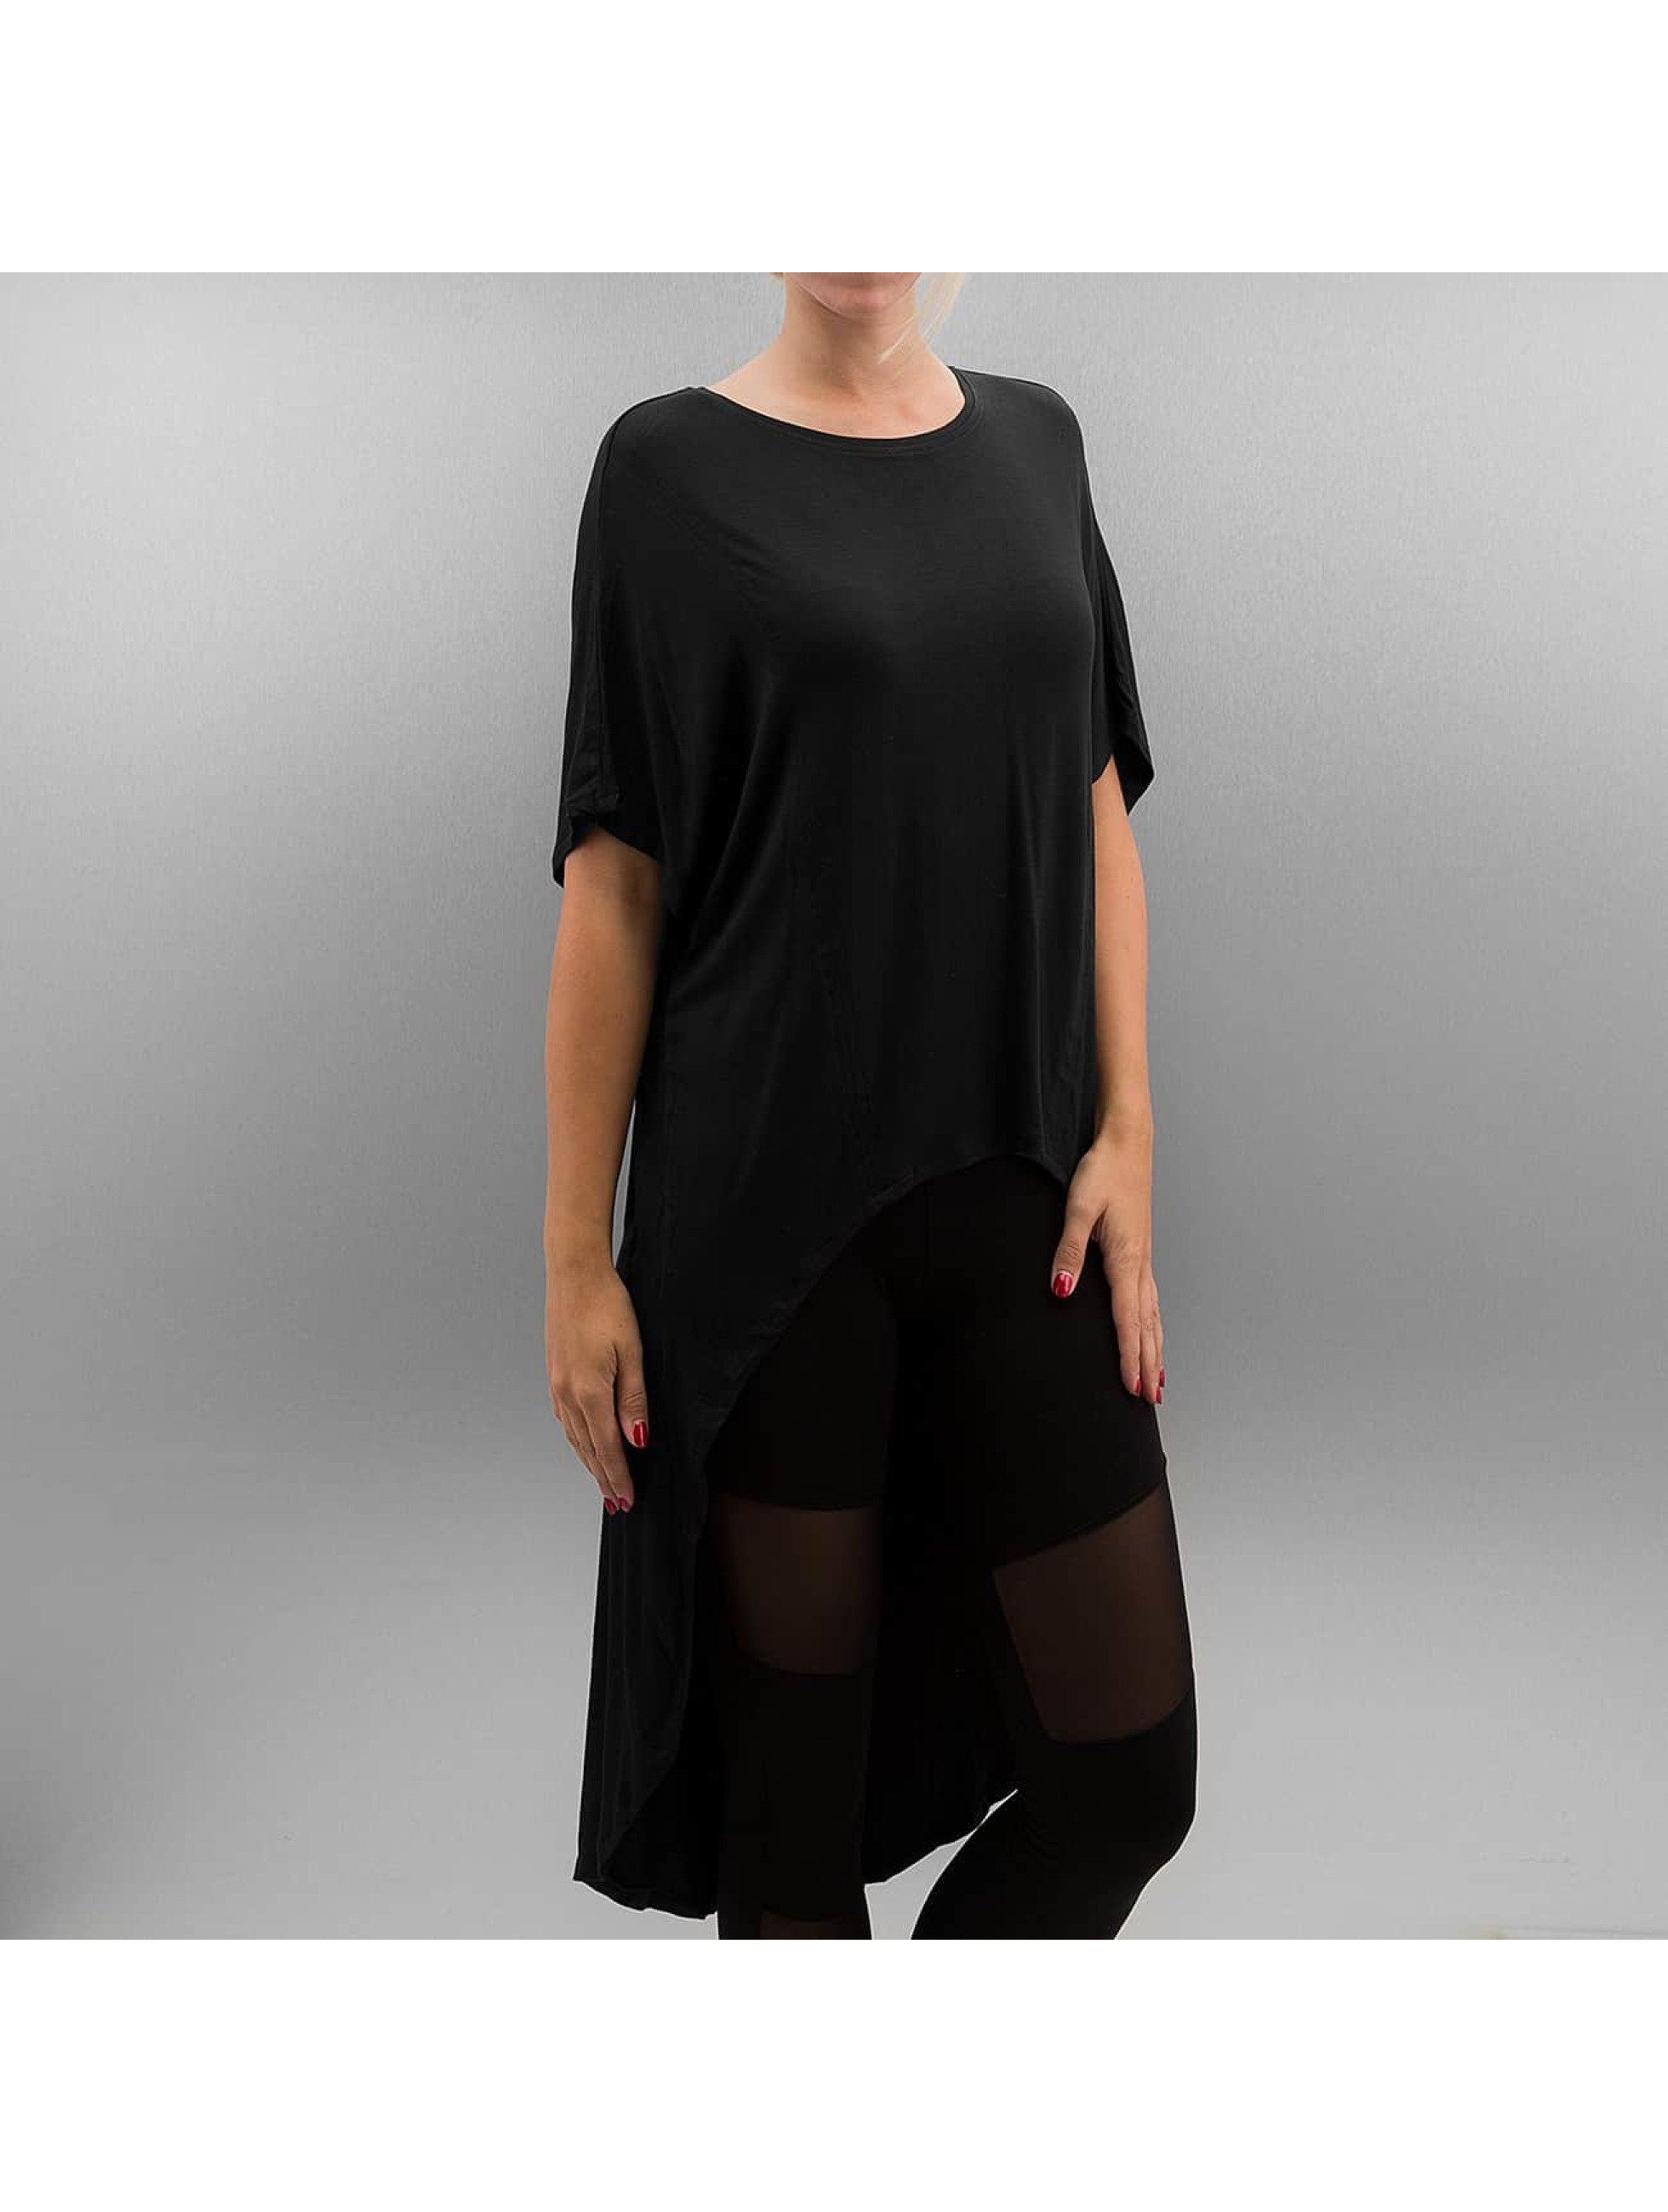 T-Shirt Ladies Viscose Oversized HiLo in schwarz